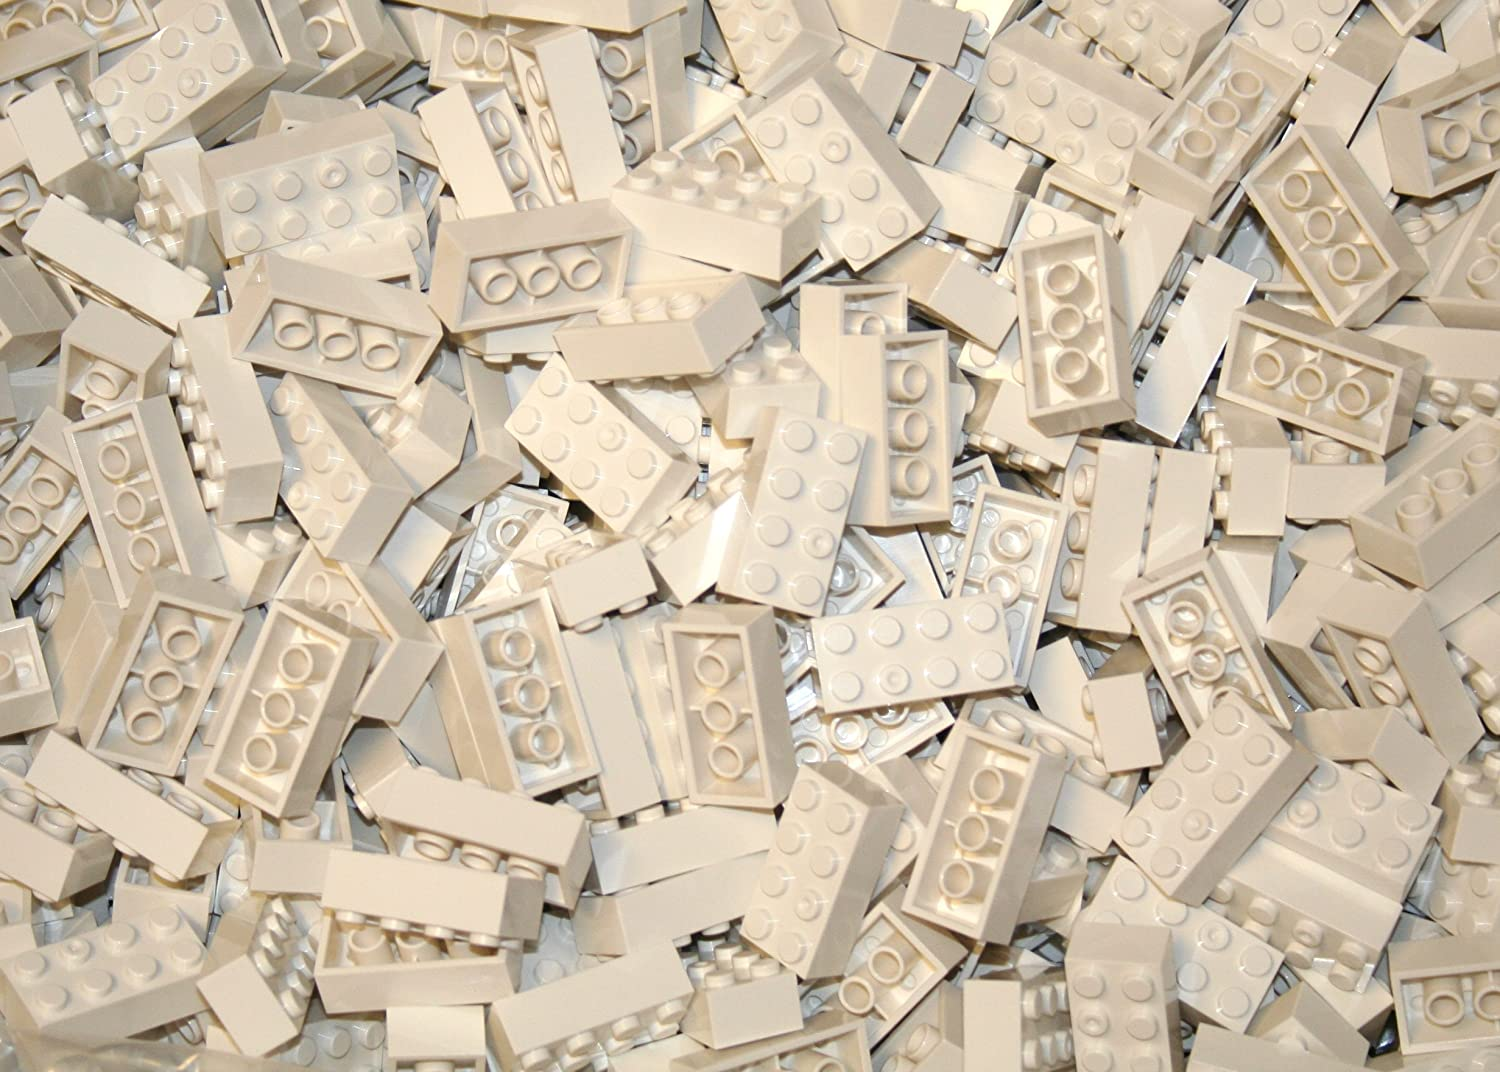 200 White Generic 2x4 bricks, compatible to all major brand building blocks